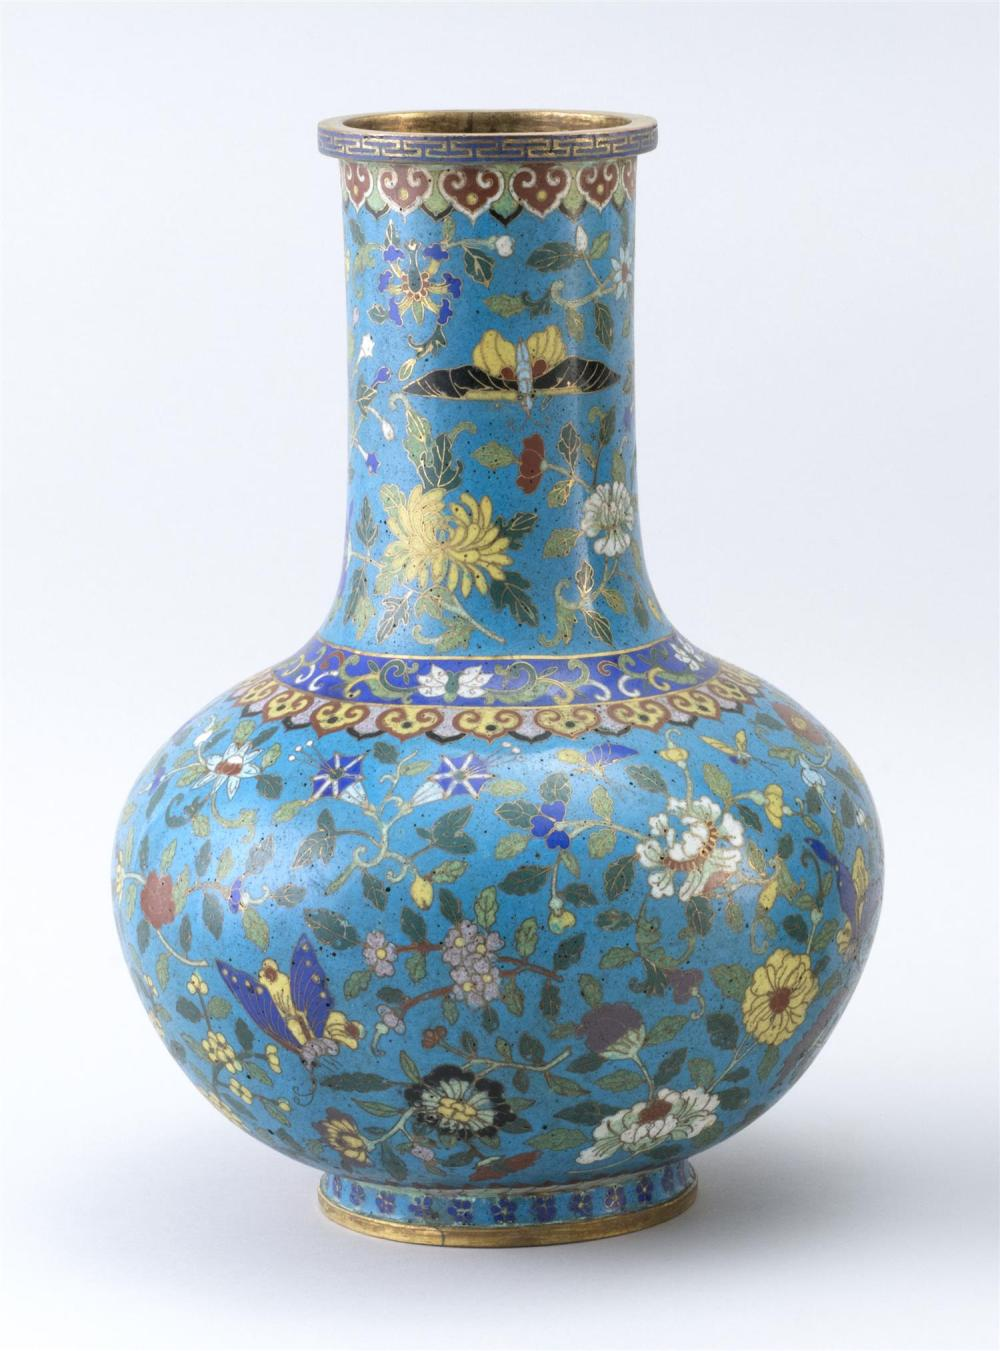 "CHINESE CLOISONNÉ ENAMEL VASE In mallet form, with flower and butterfly design on a blue ground. Height 12.75""."